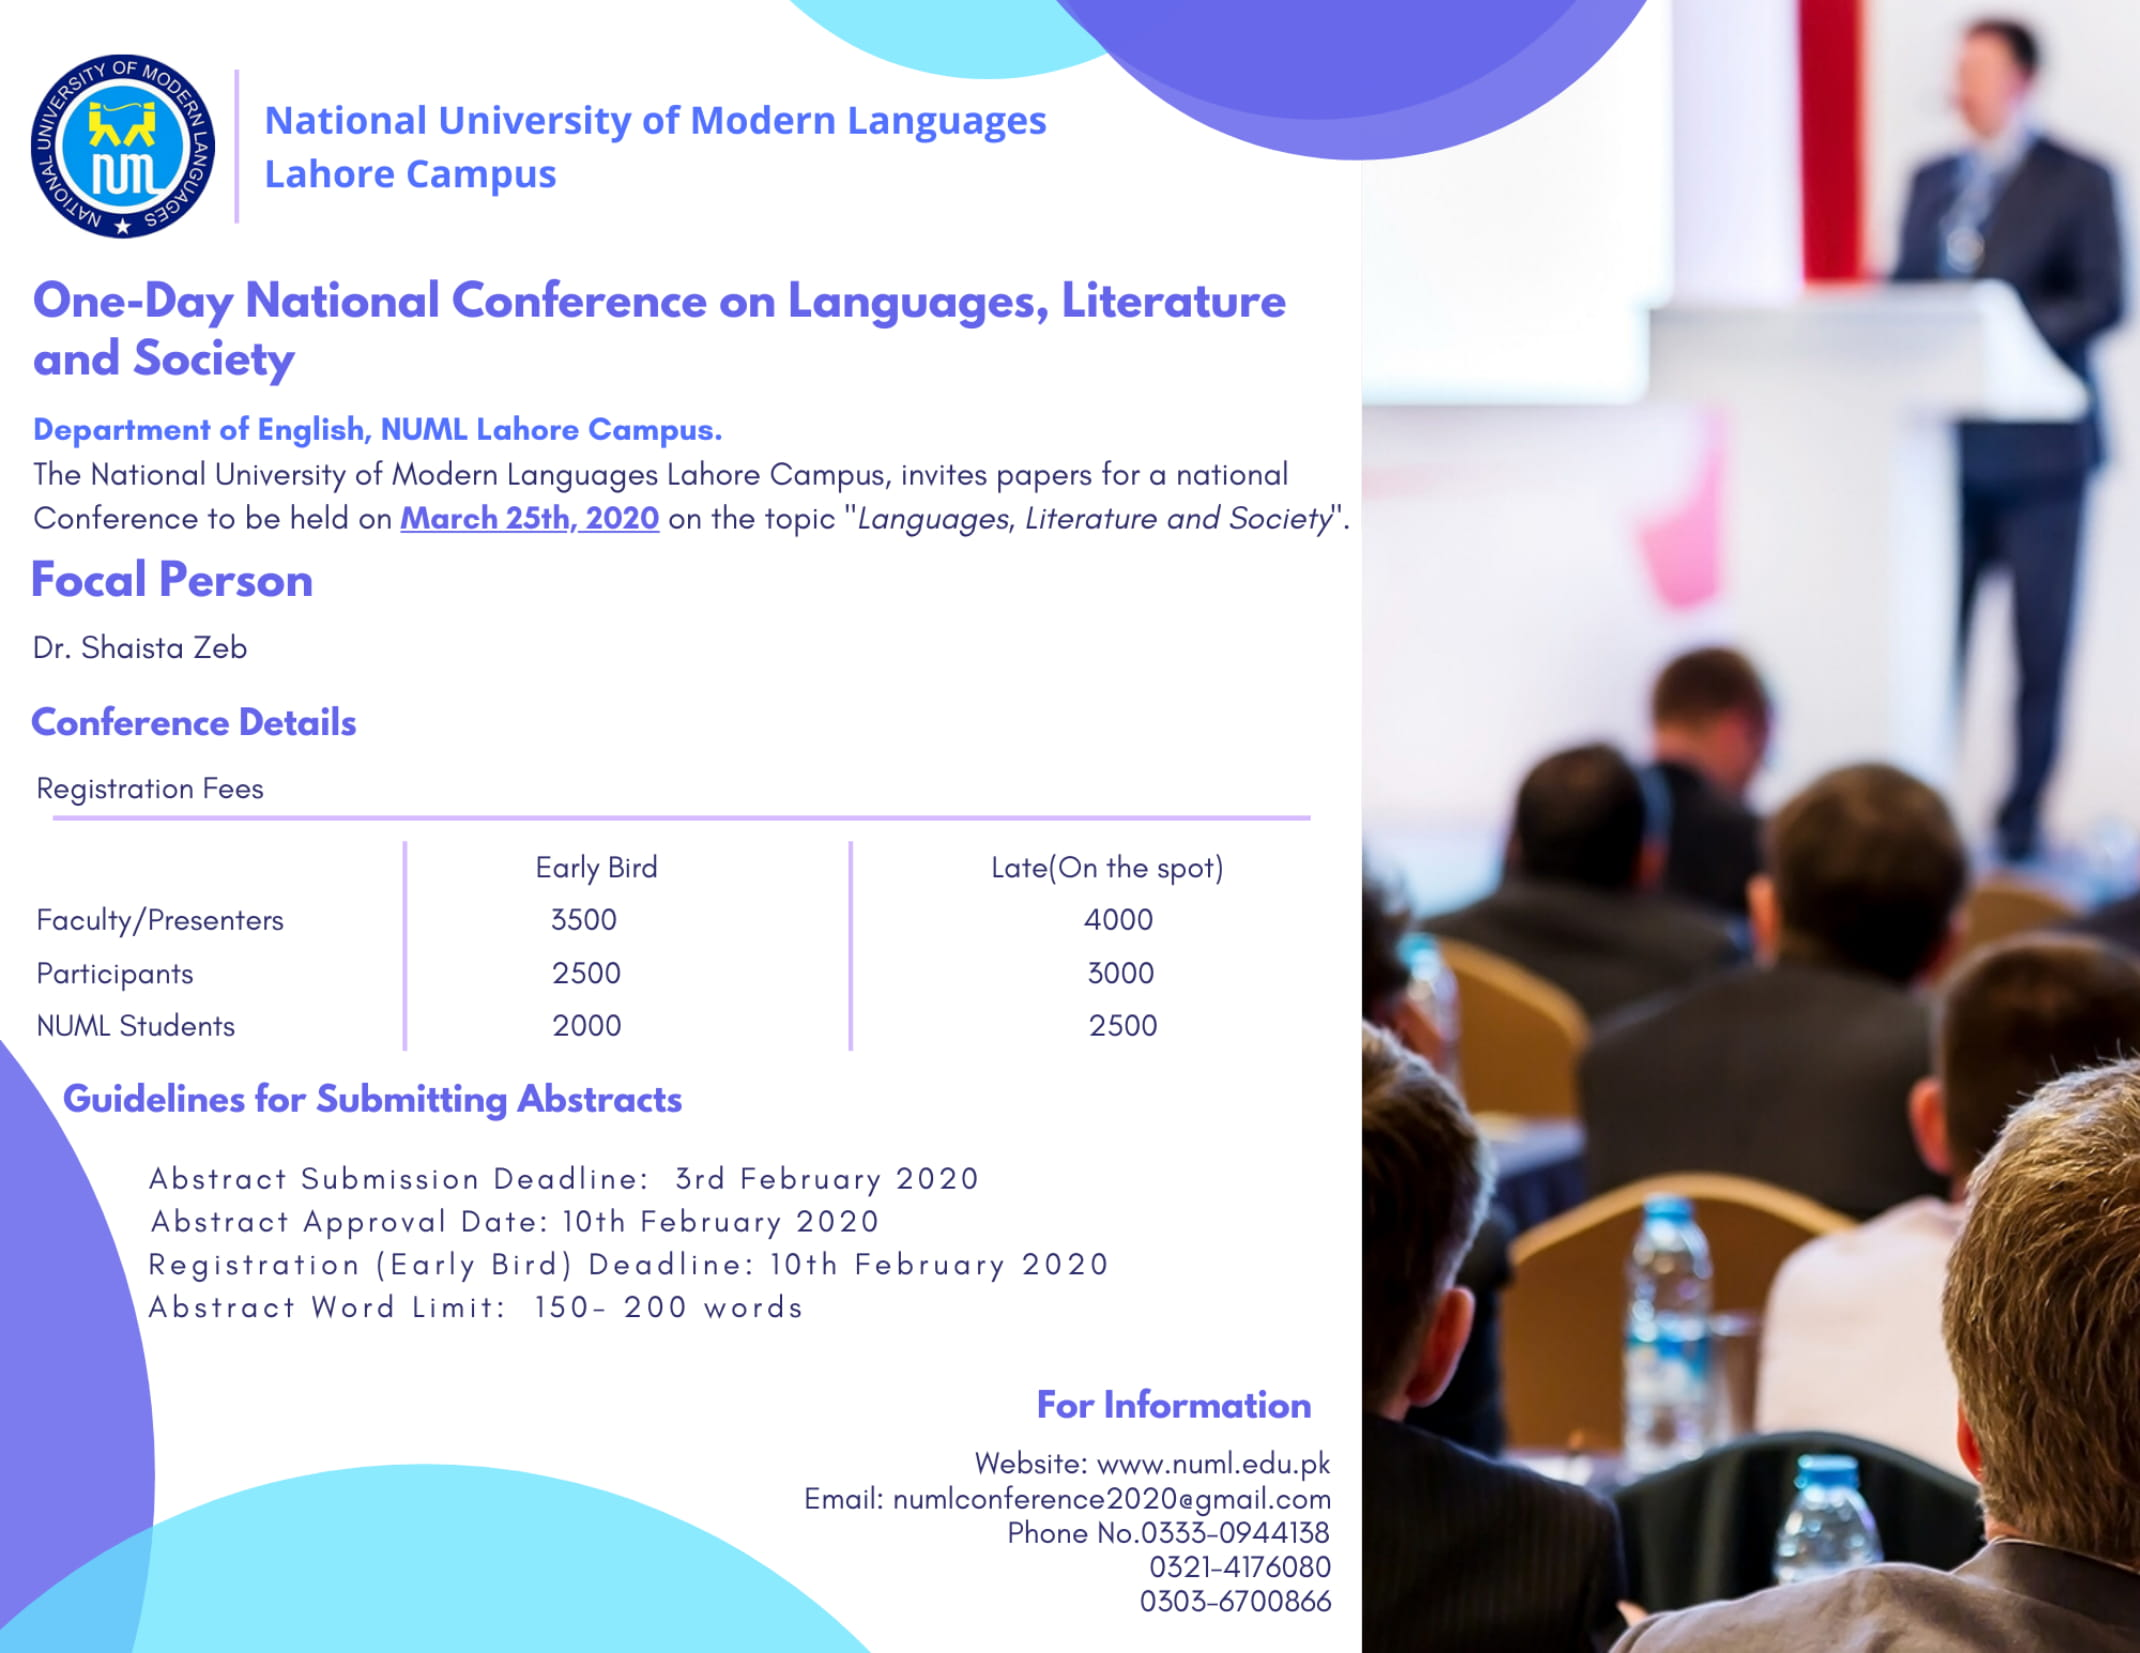 ONE DAY NATIONAL CONFERENCE ON LANGUAGE LITERATURE AND SOCIETY